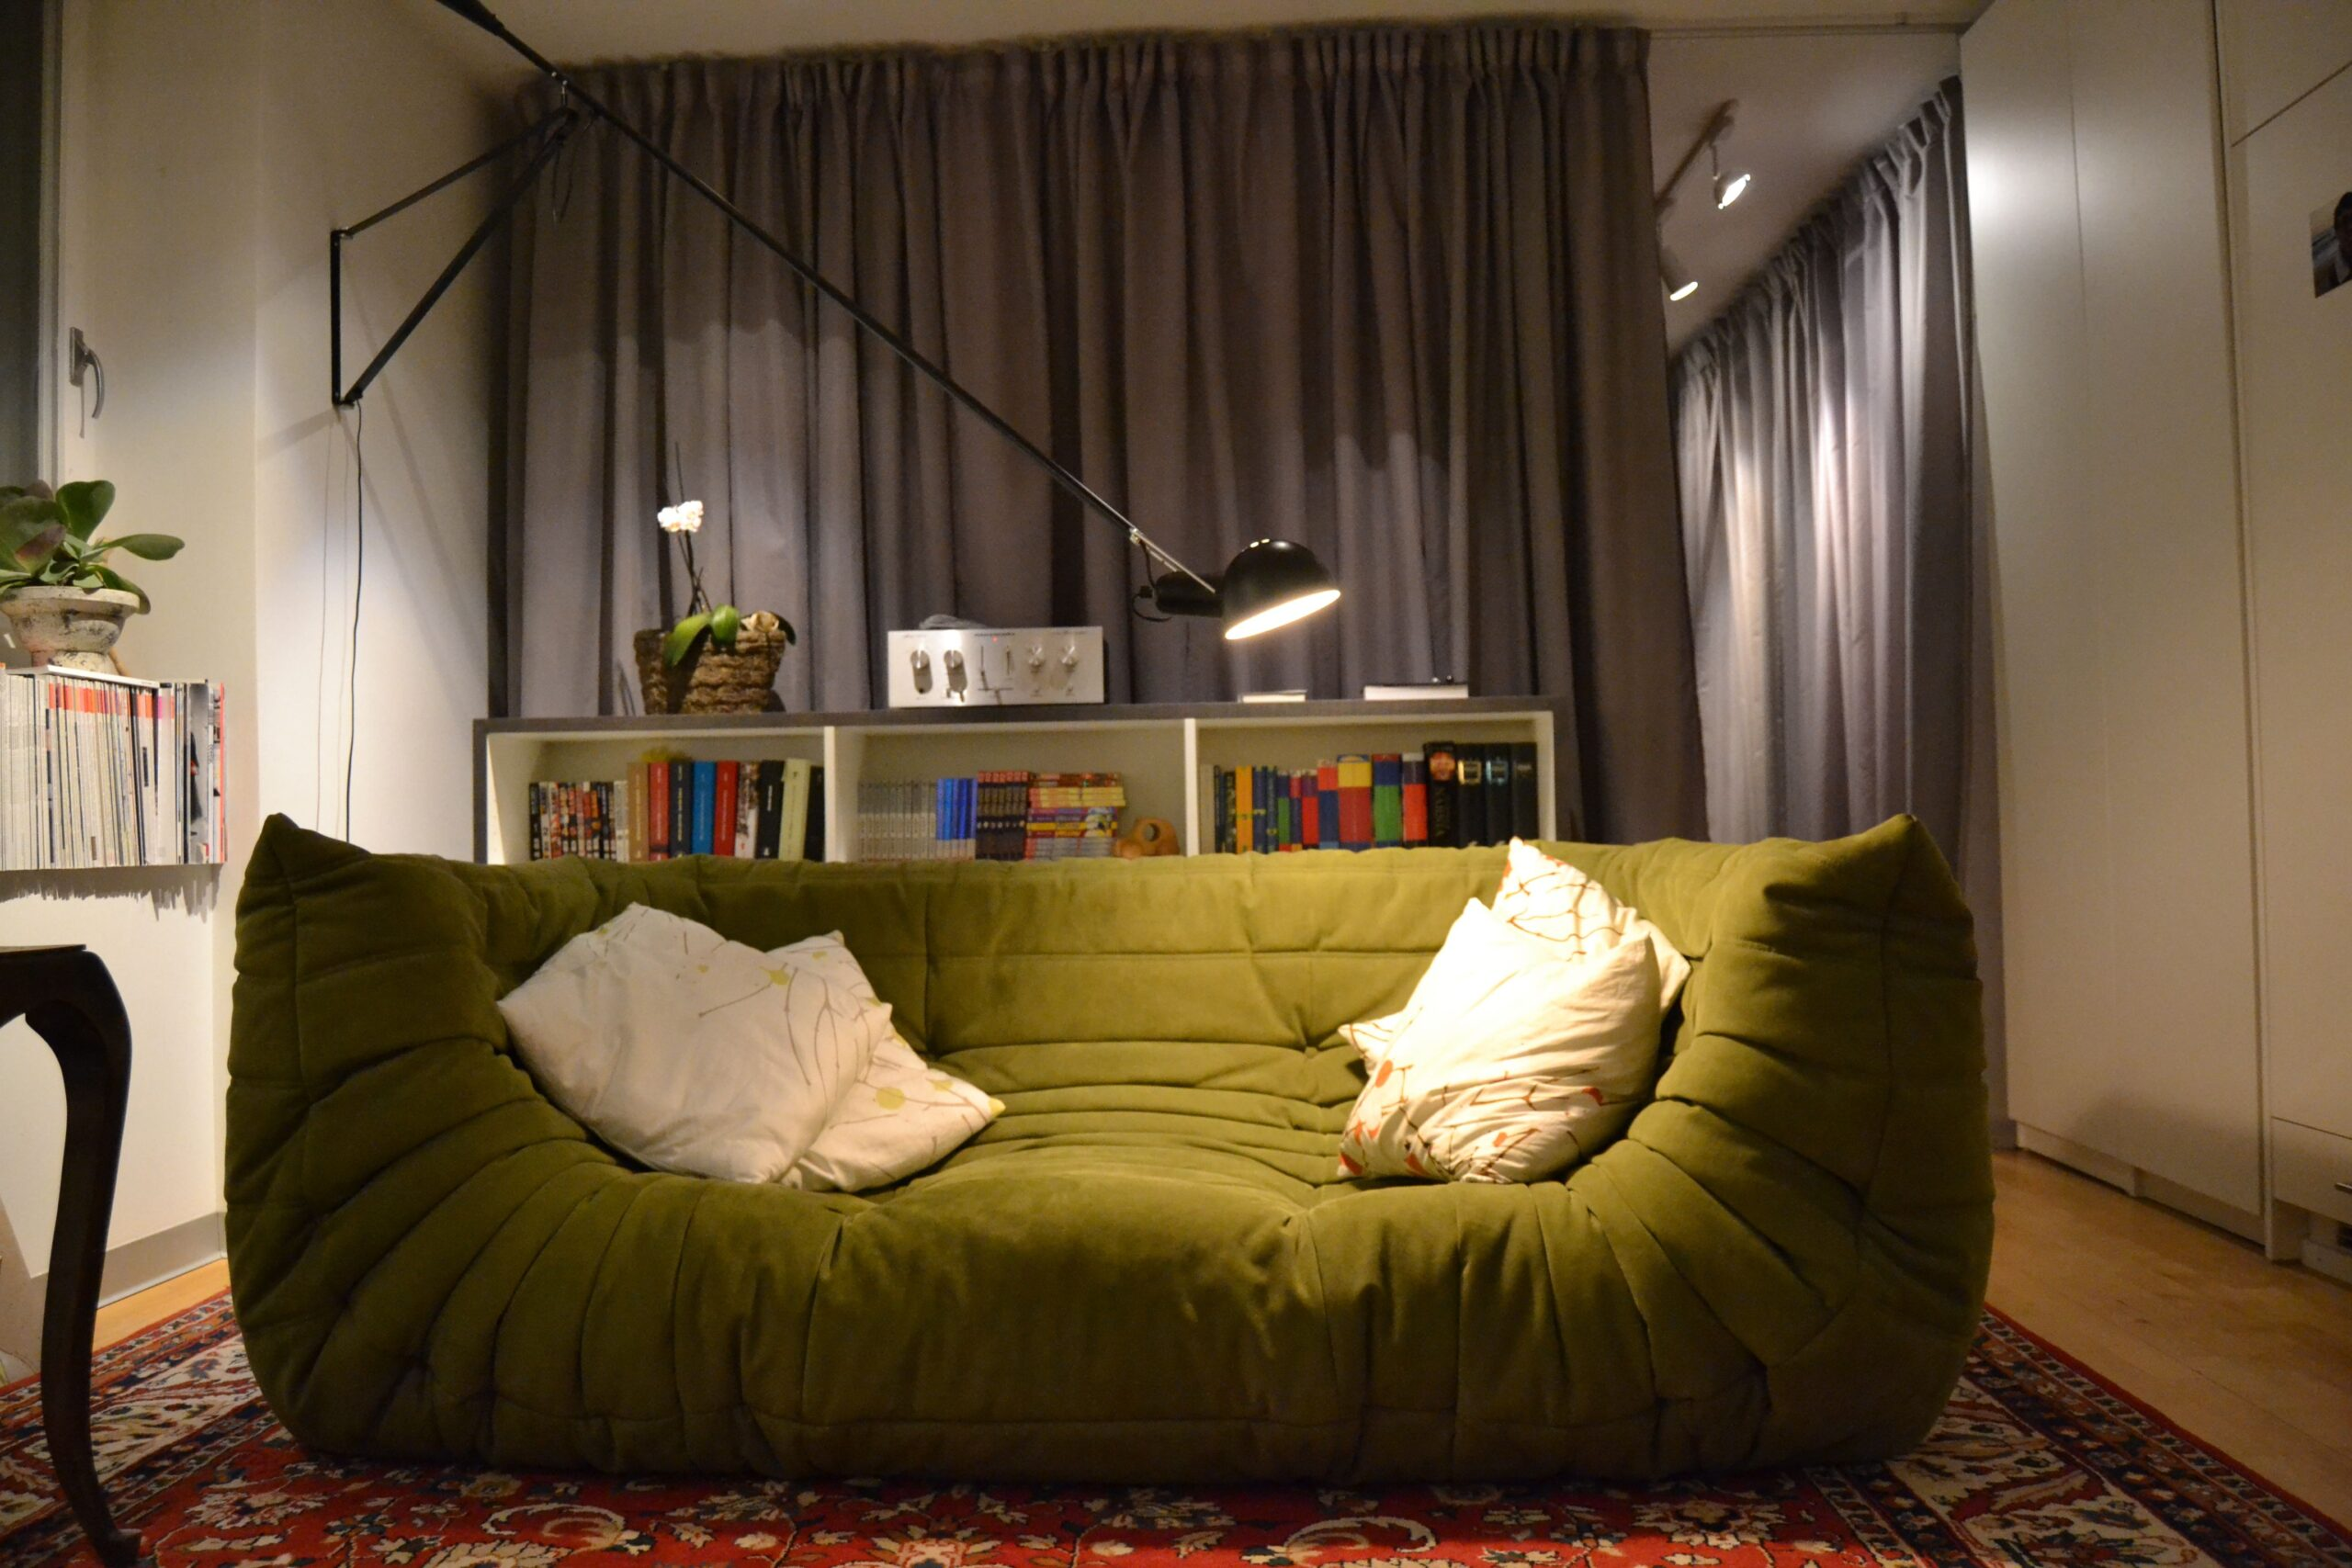 Full Size of Ligne Roset Togo 3 Places Dimensions List Replica Uk Occasion Suisse Sofa Gebraucht Verkaufen Fake Sessel Sale Love The From In This Olive Green Made Wohnzimmer Ligne Roset Togo